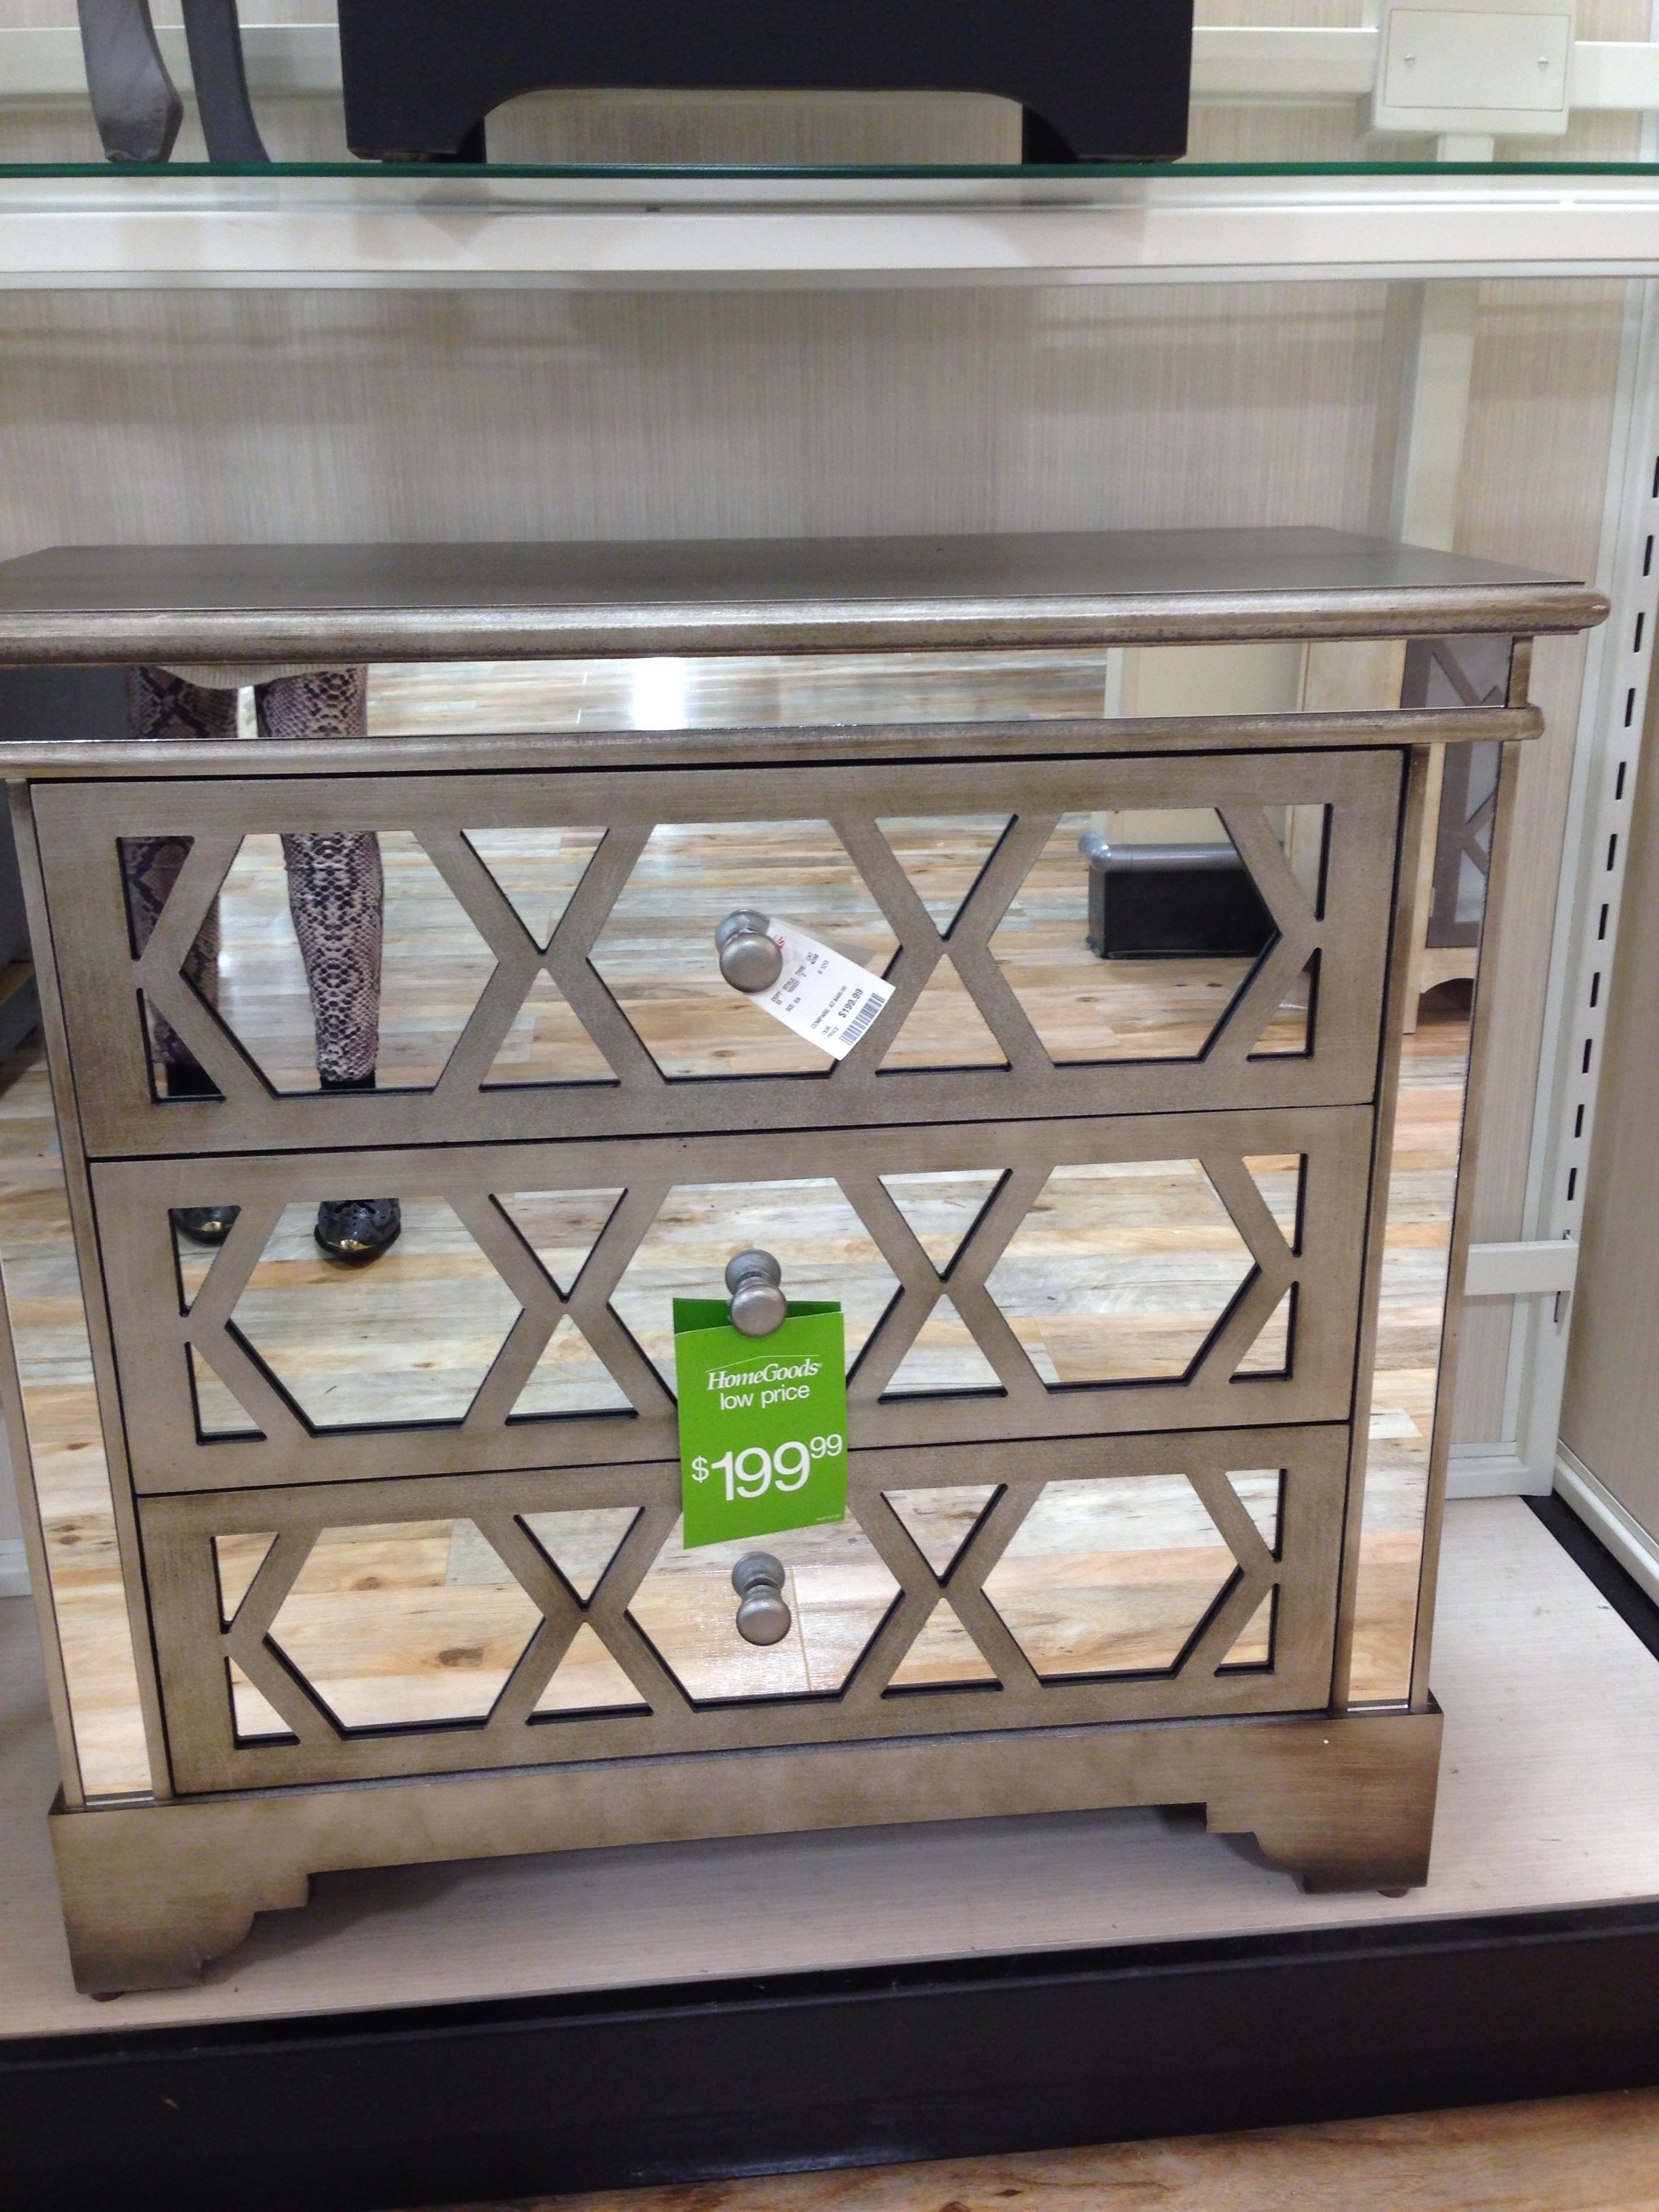 Home Goods Mirrored Furniture. Mirrored dresser   Seen at HomeGoods Store   Pinterest   Mirrored